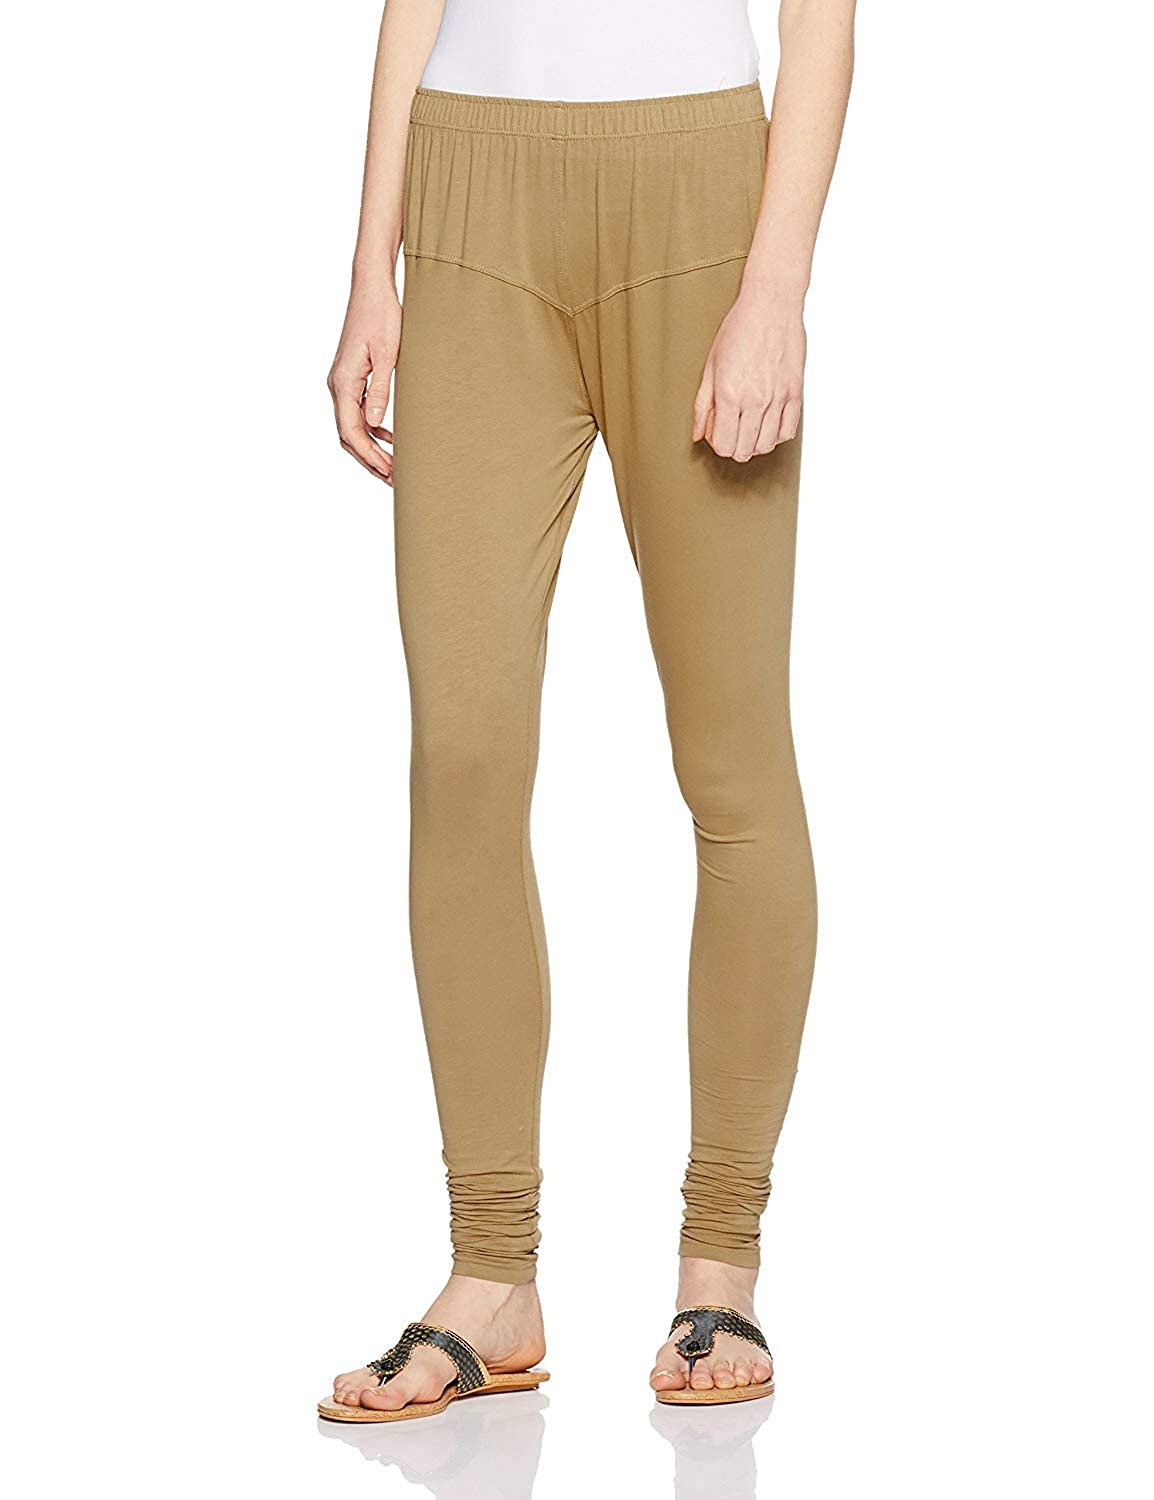 LYRA Women's Beige Churidar Leggings